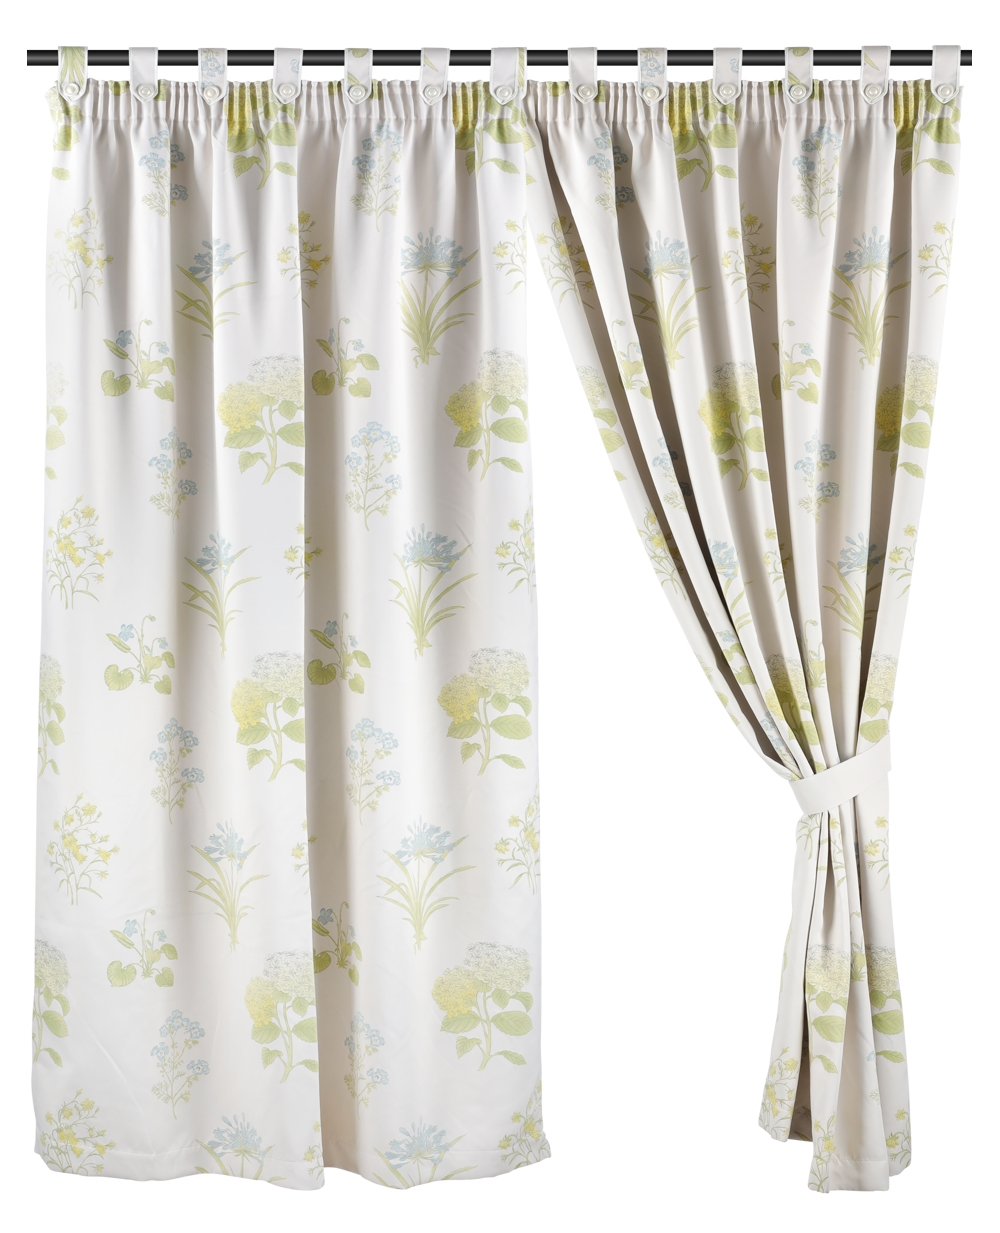 Ready Made Curtain, Printed, Dim Out, 3 Ways Hanging Options